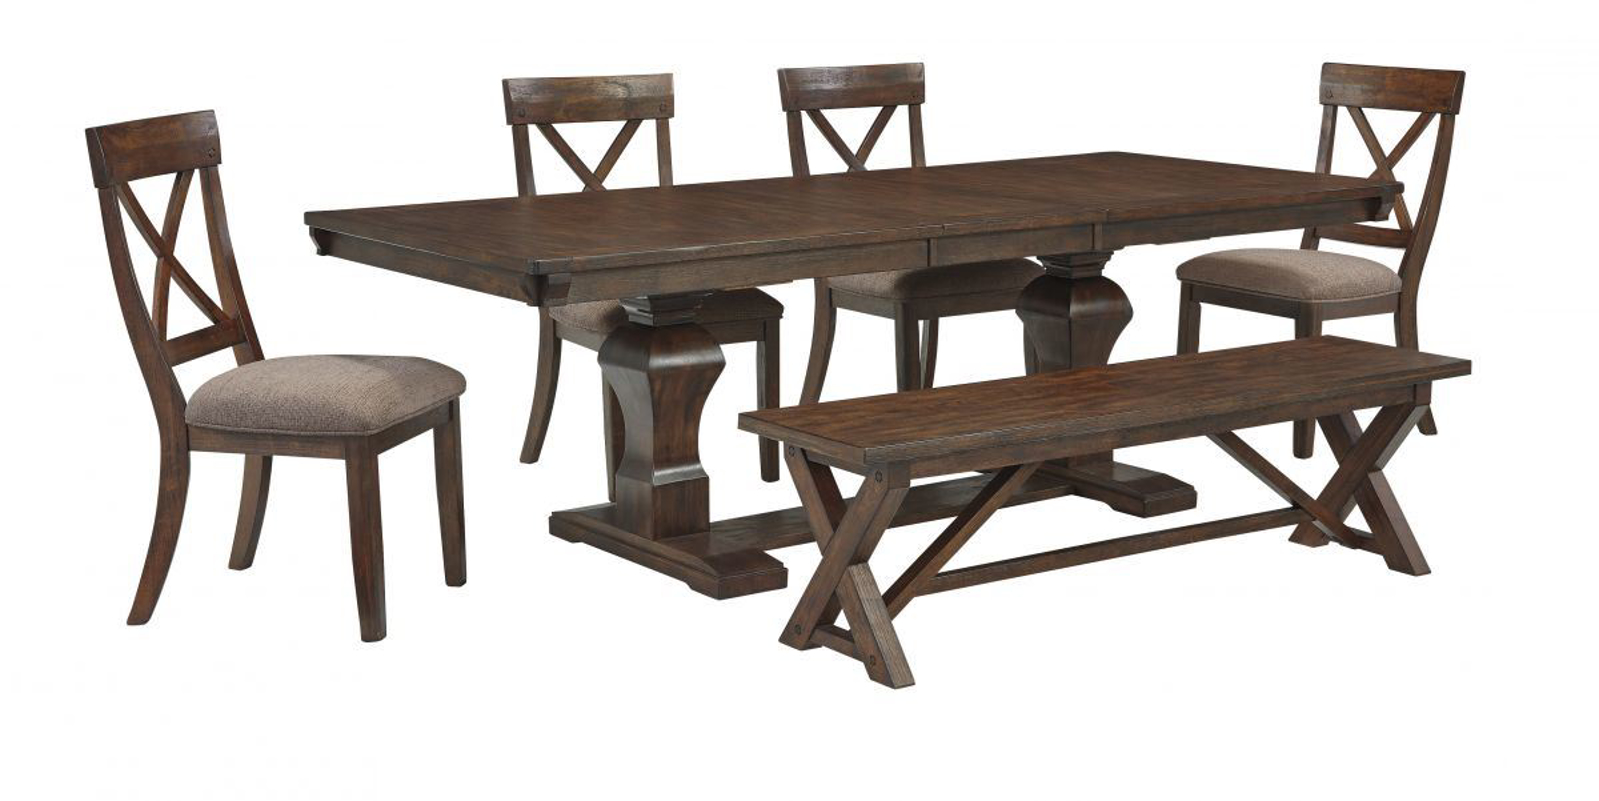 Picture of Windville Table, 4 Chairs & Bench